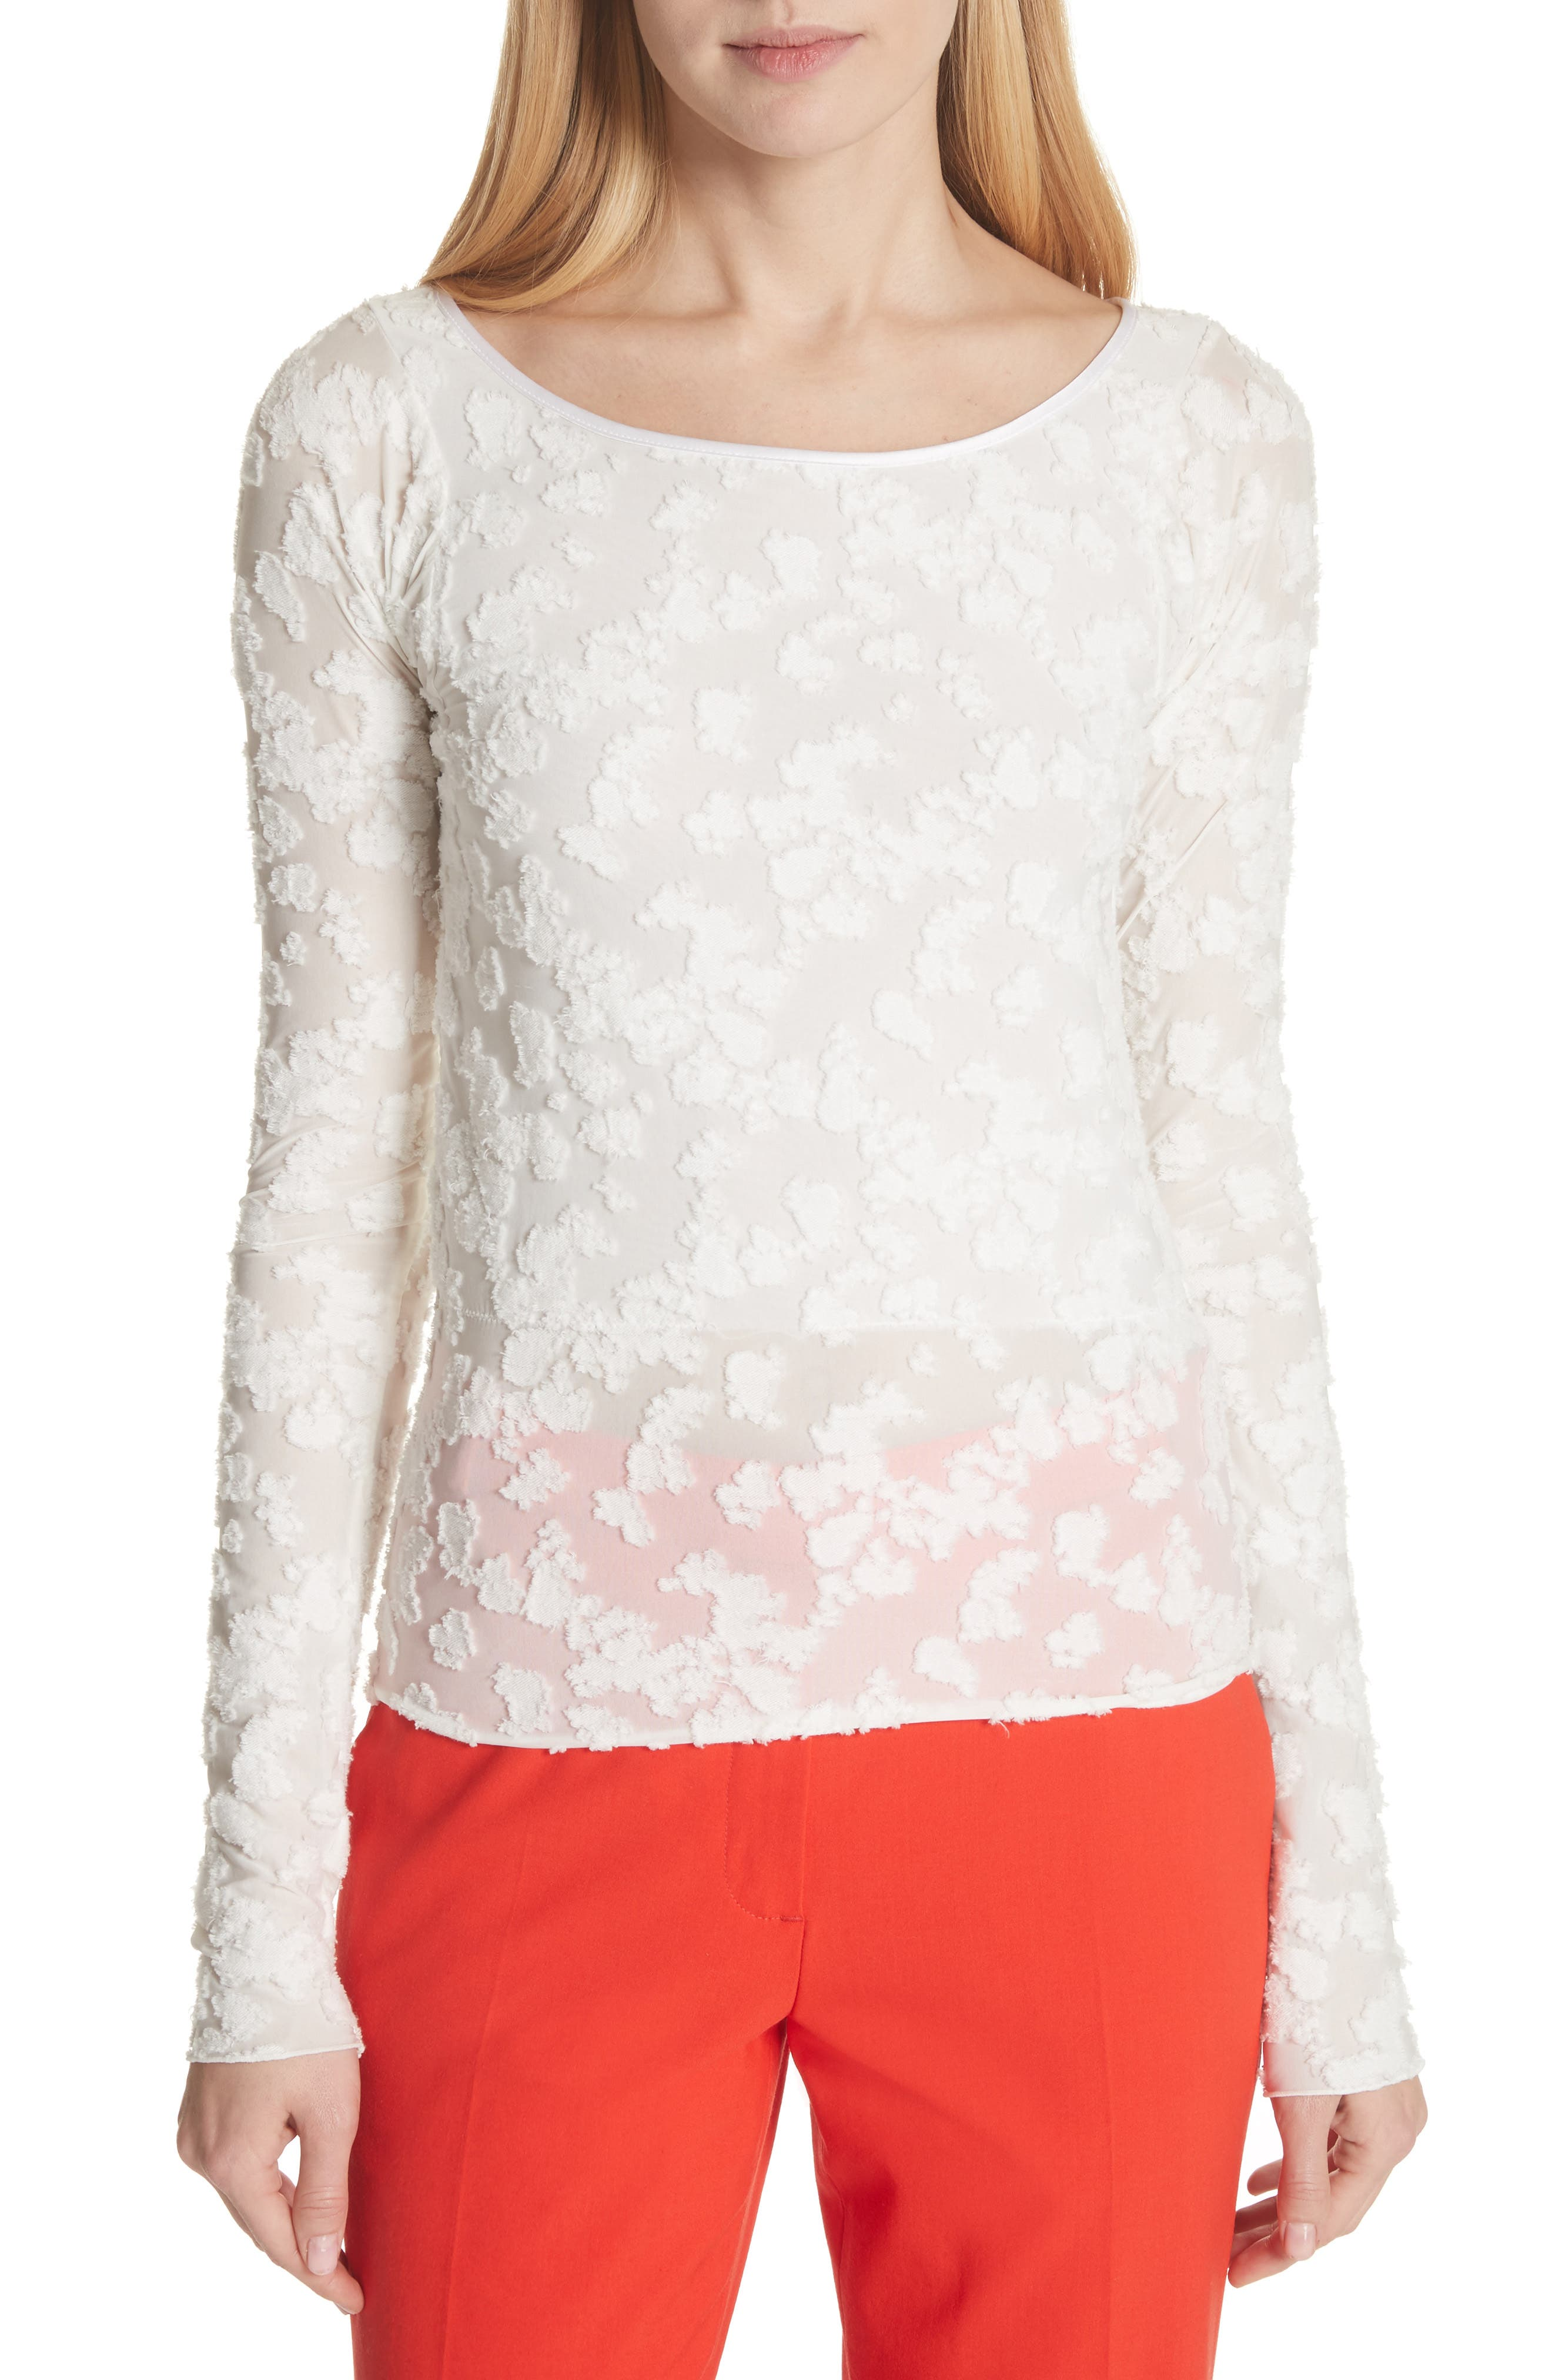 Lucie Floral Jacquard Sweater,                         Main,                         color, White